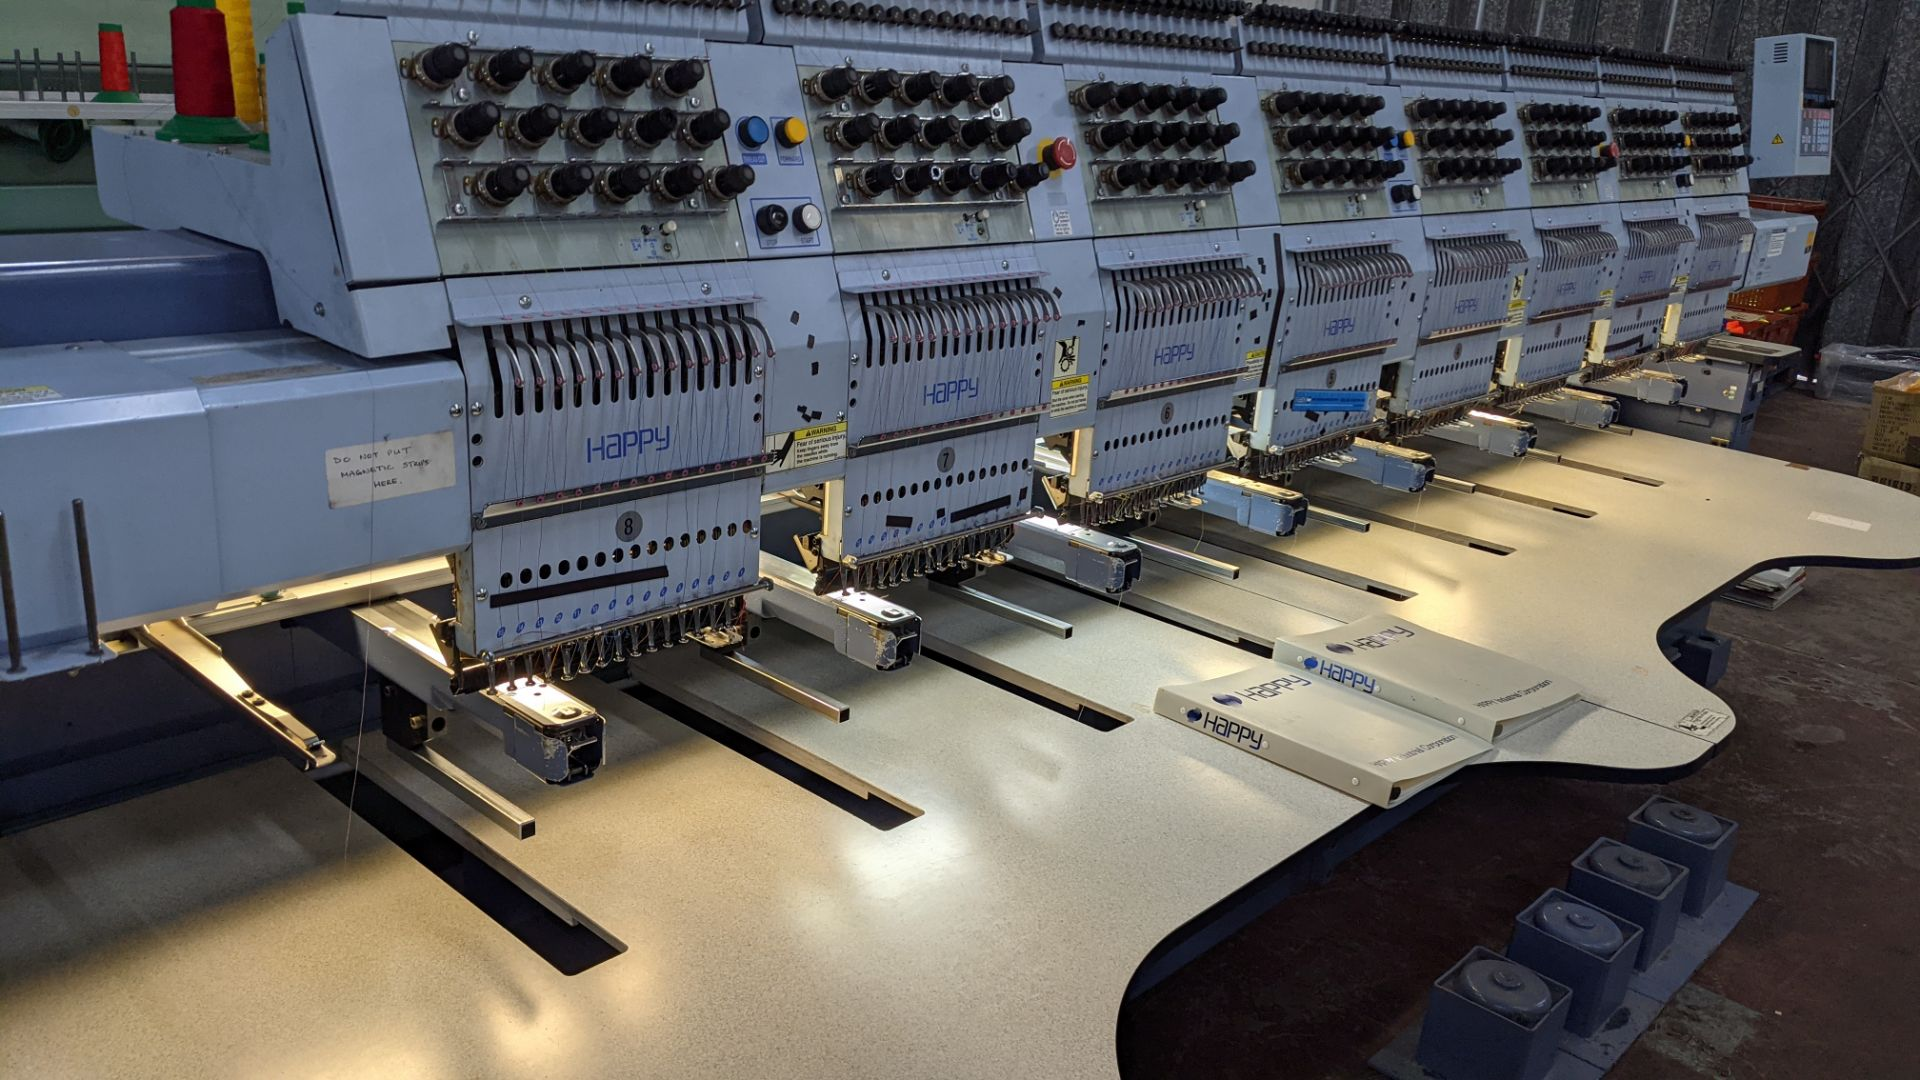 Happy 8 head embroidery machine, model HCG-1508-45TTC, 15 needles per head, including frames & other - Image 17 of 27